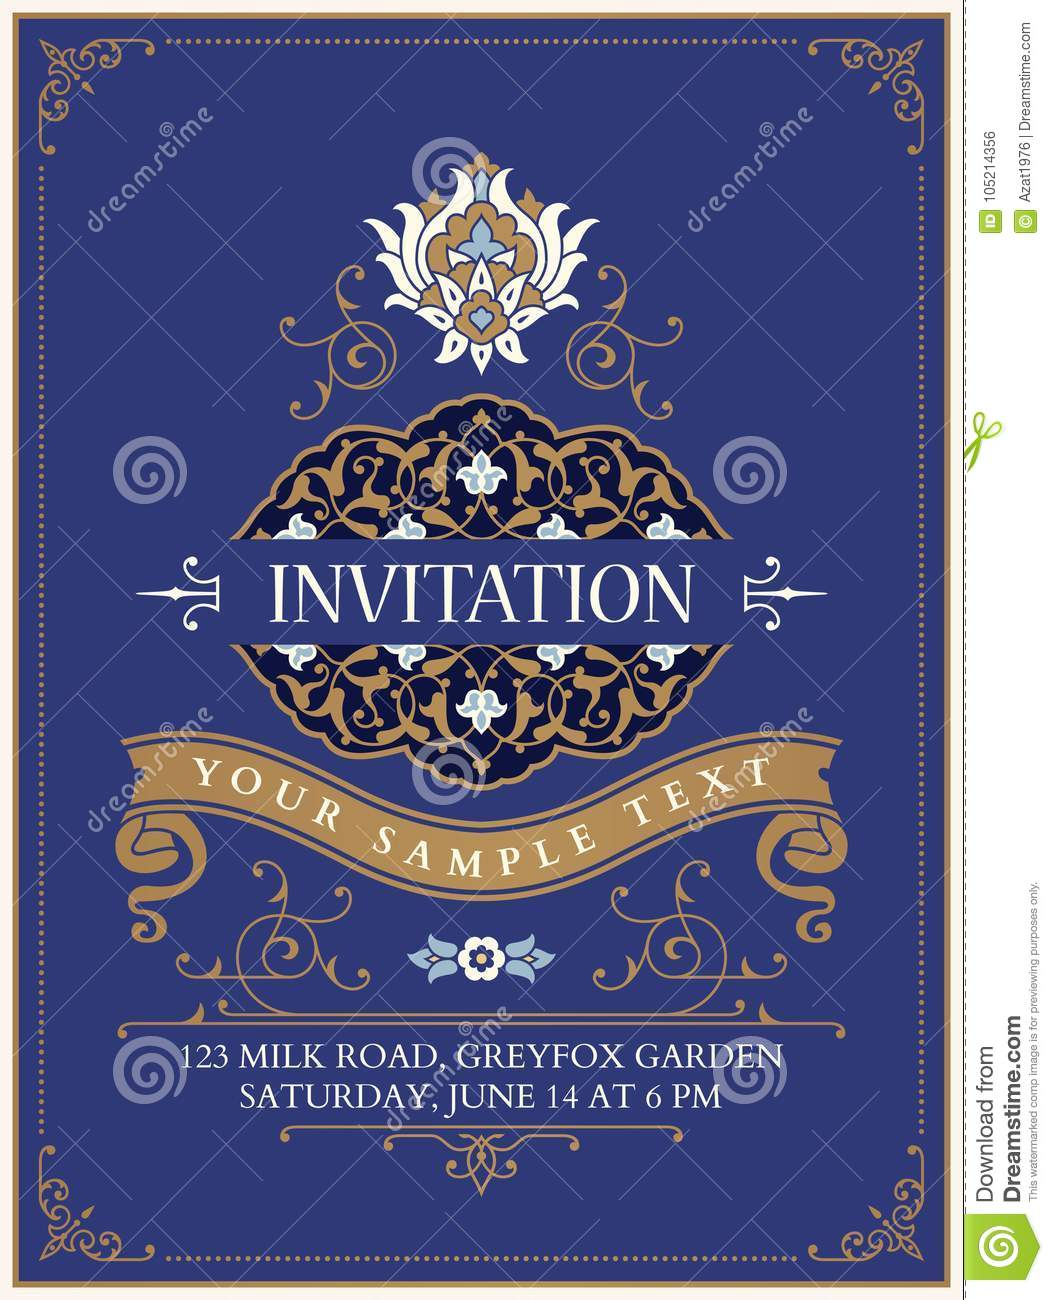 Floral Invitation Template Stock Vector Illustration Of Menu